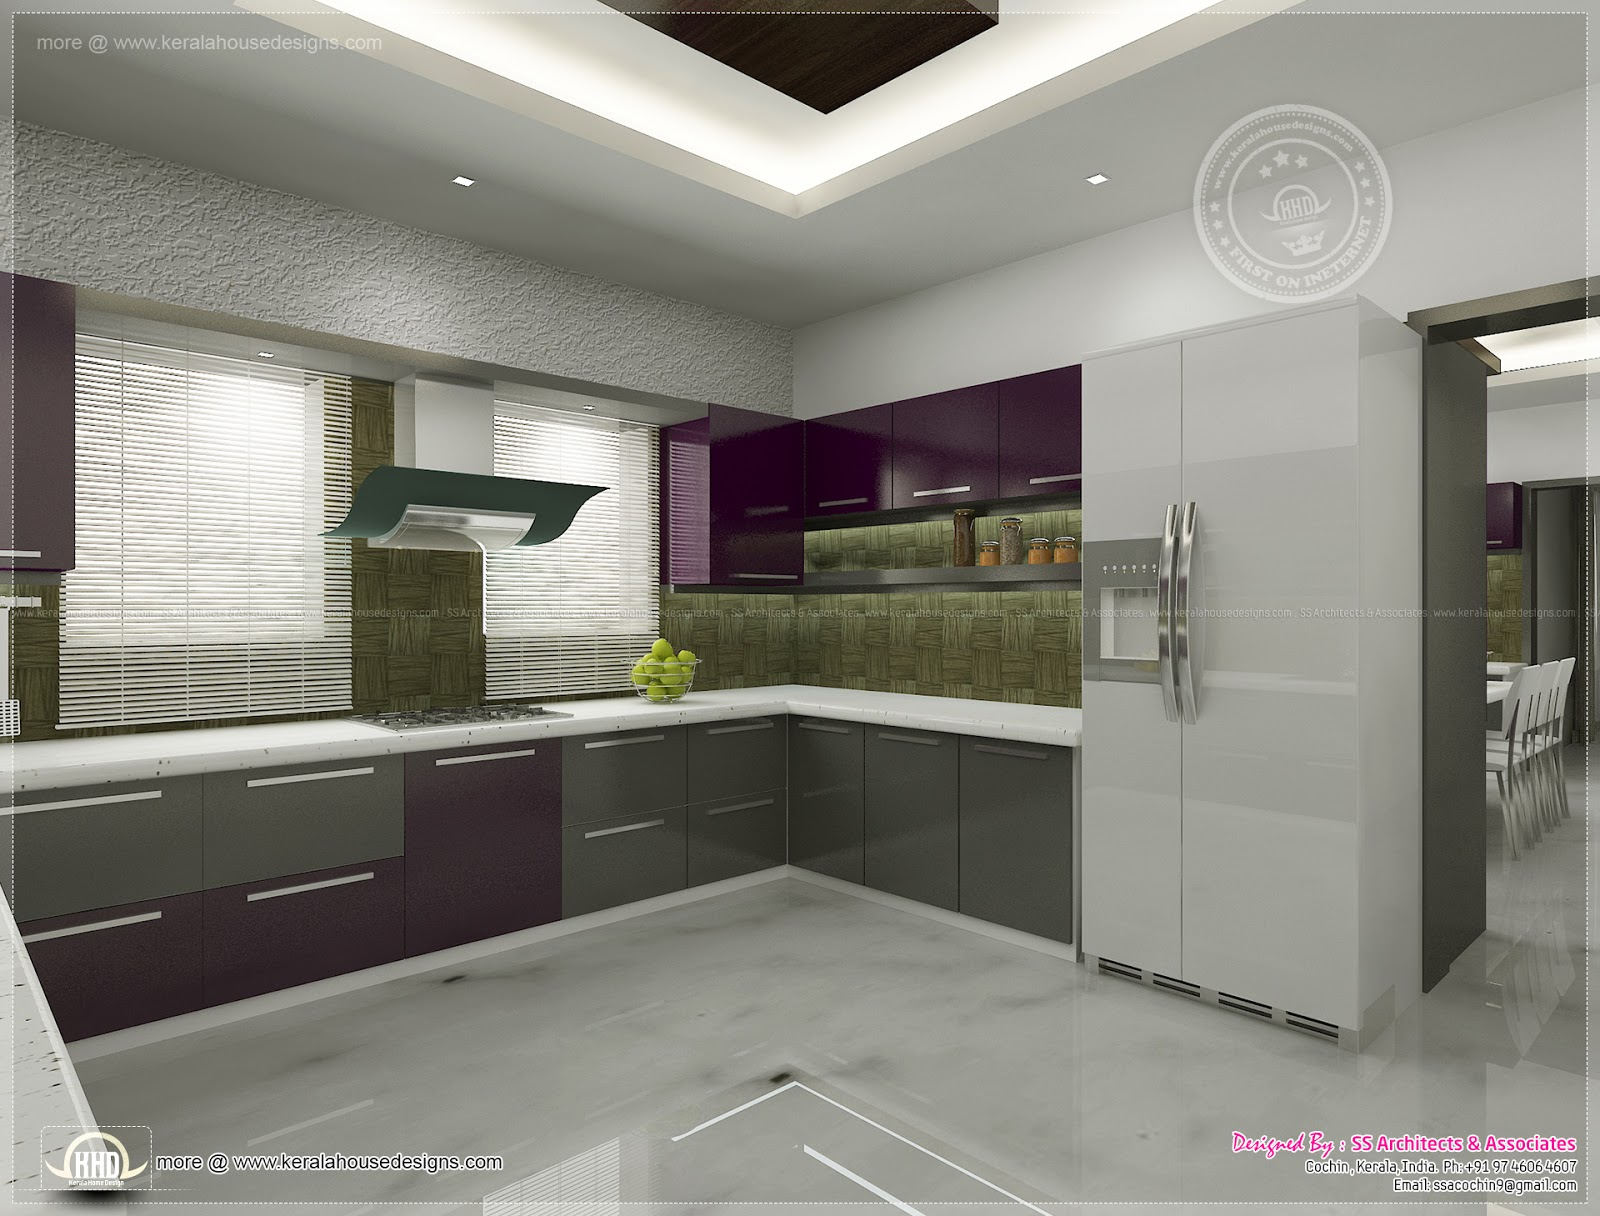 kitchen interior views by ss architects cochin home On kitchen interior images